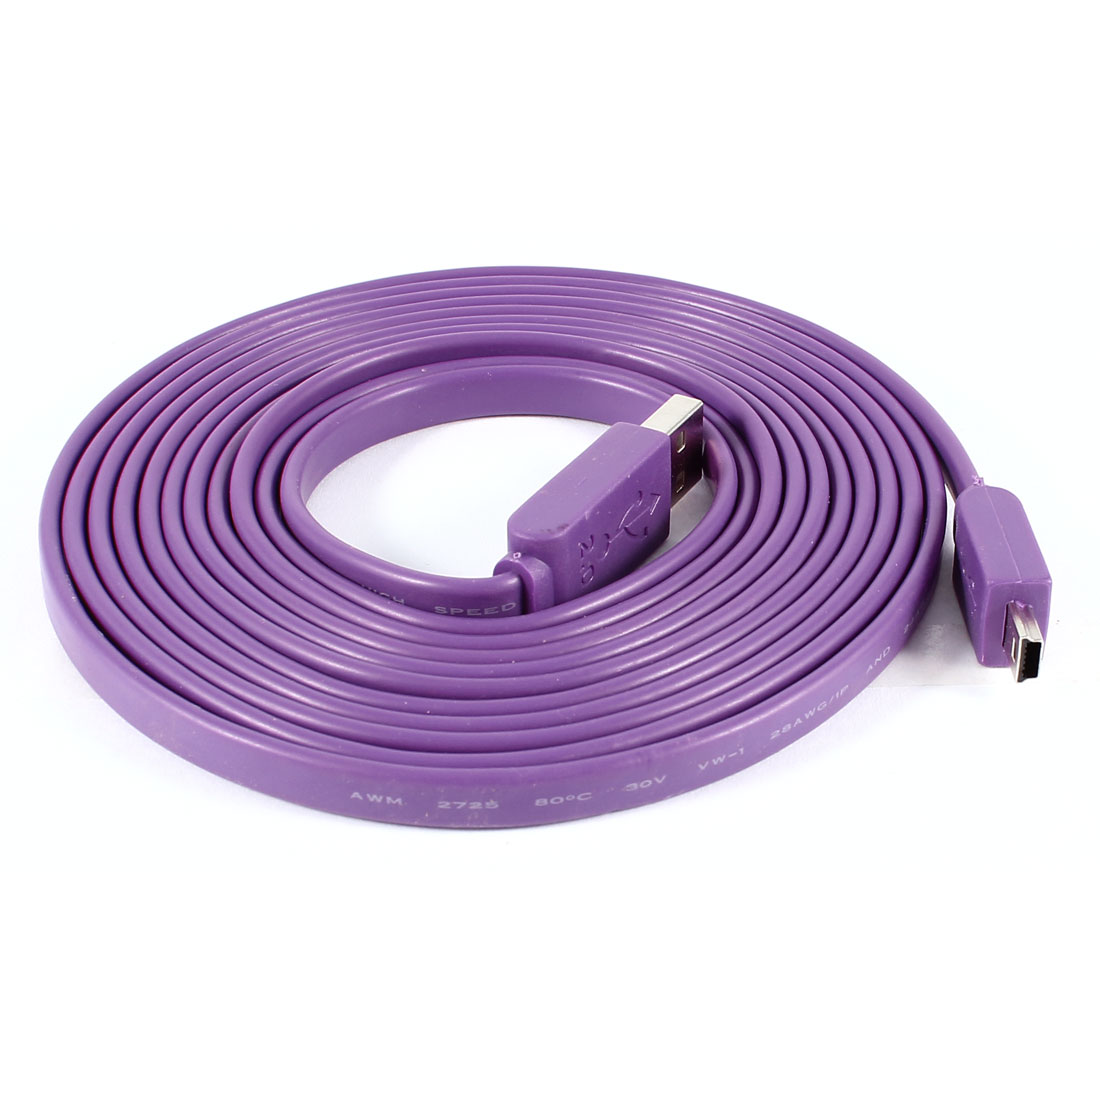 Purple USB 2.0 Type A Male to Mini USB Male Cable Lead 3 Meters